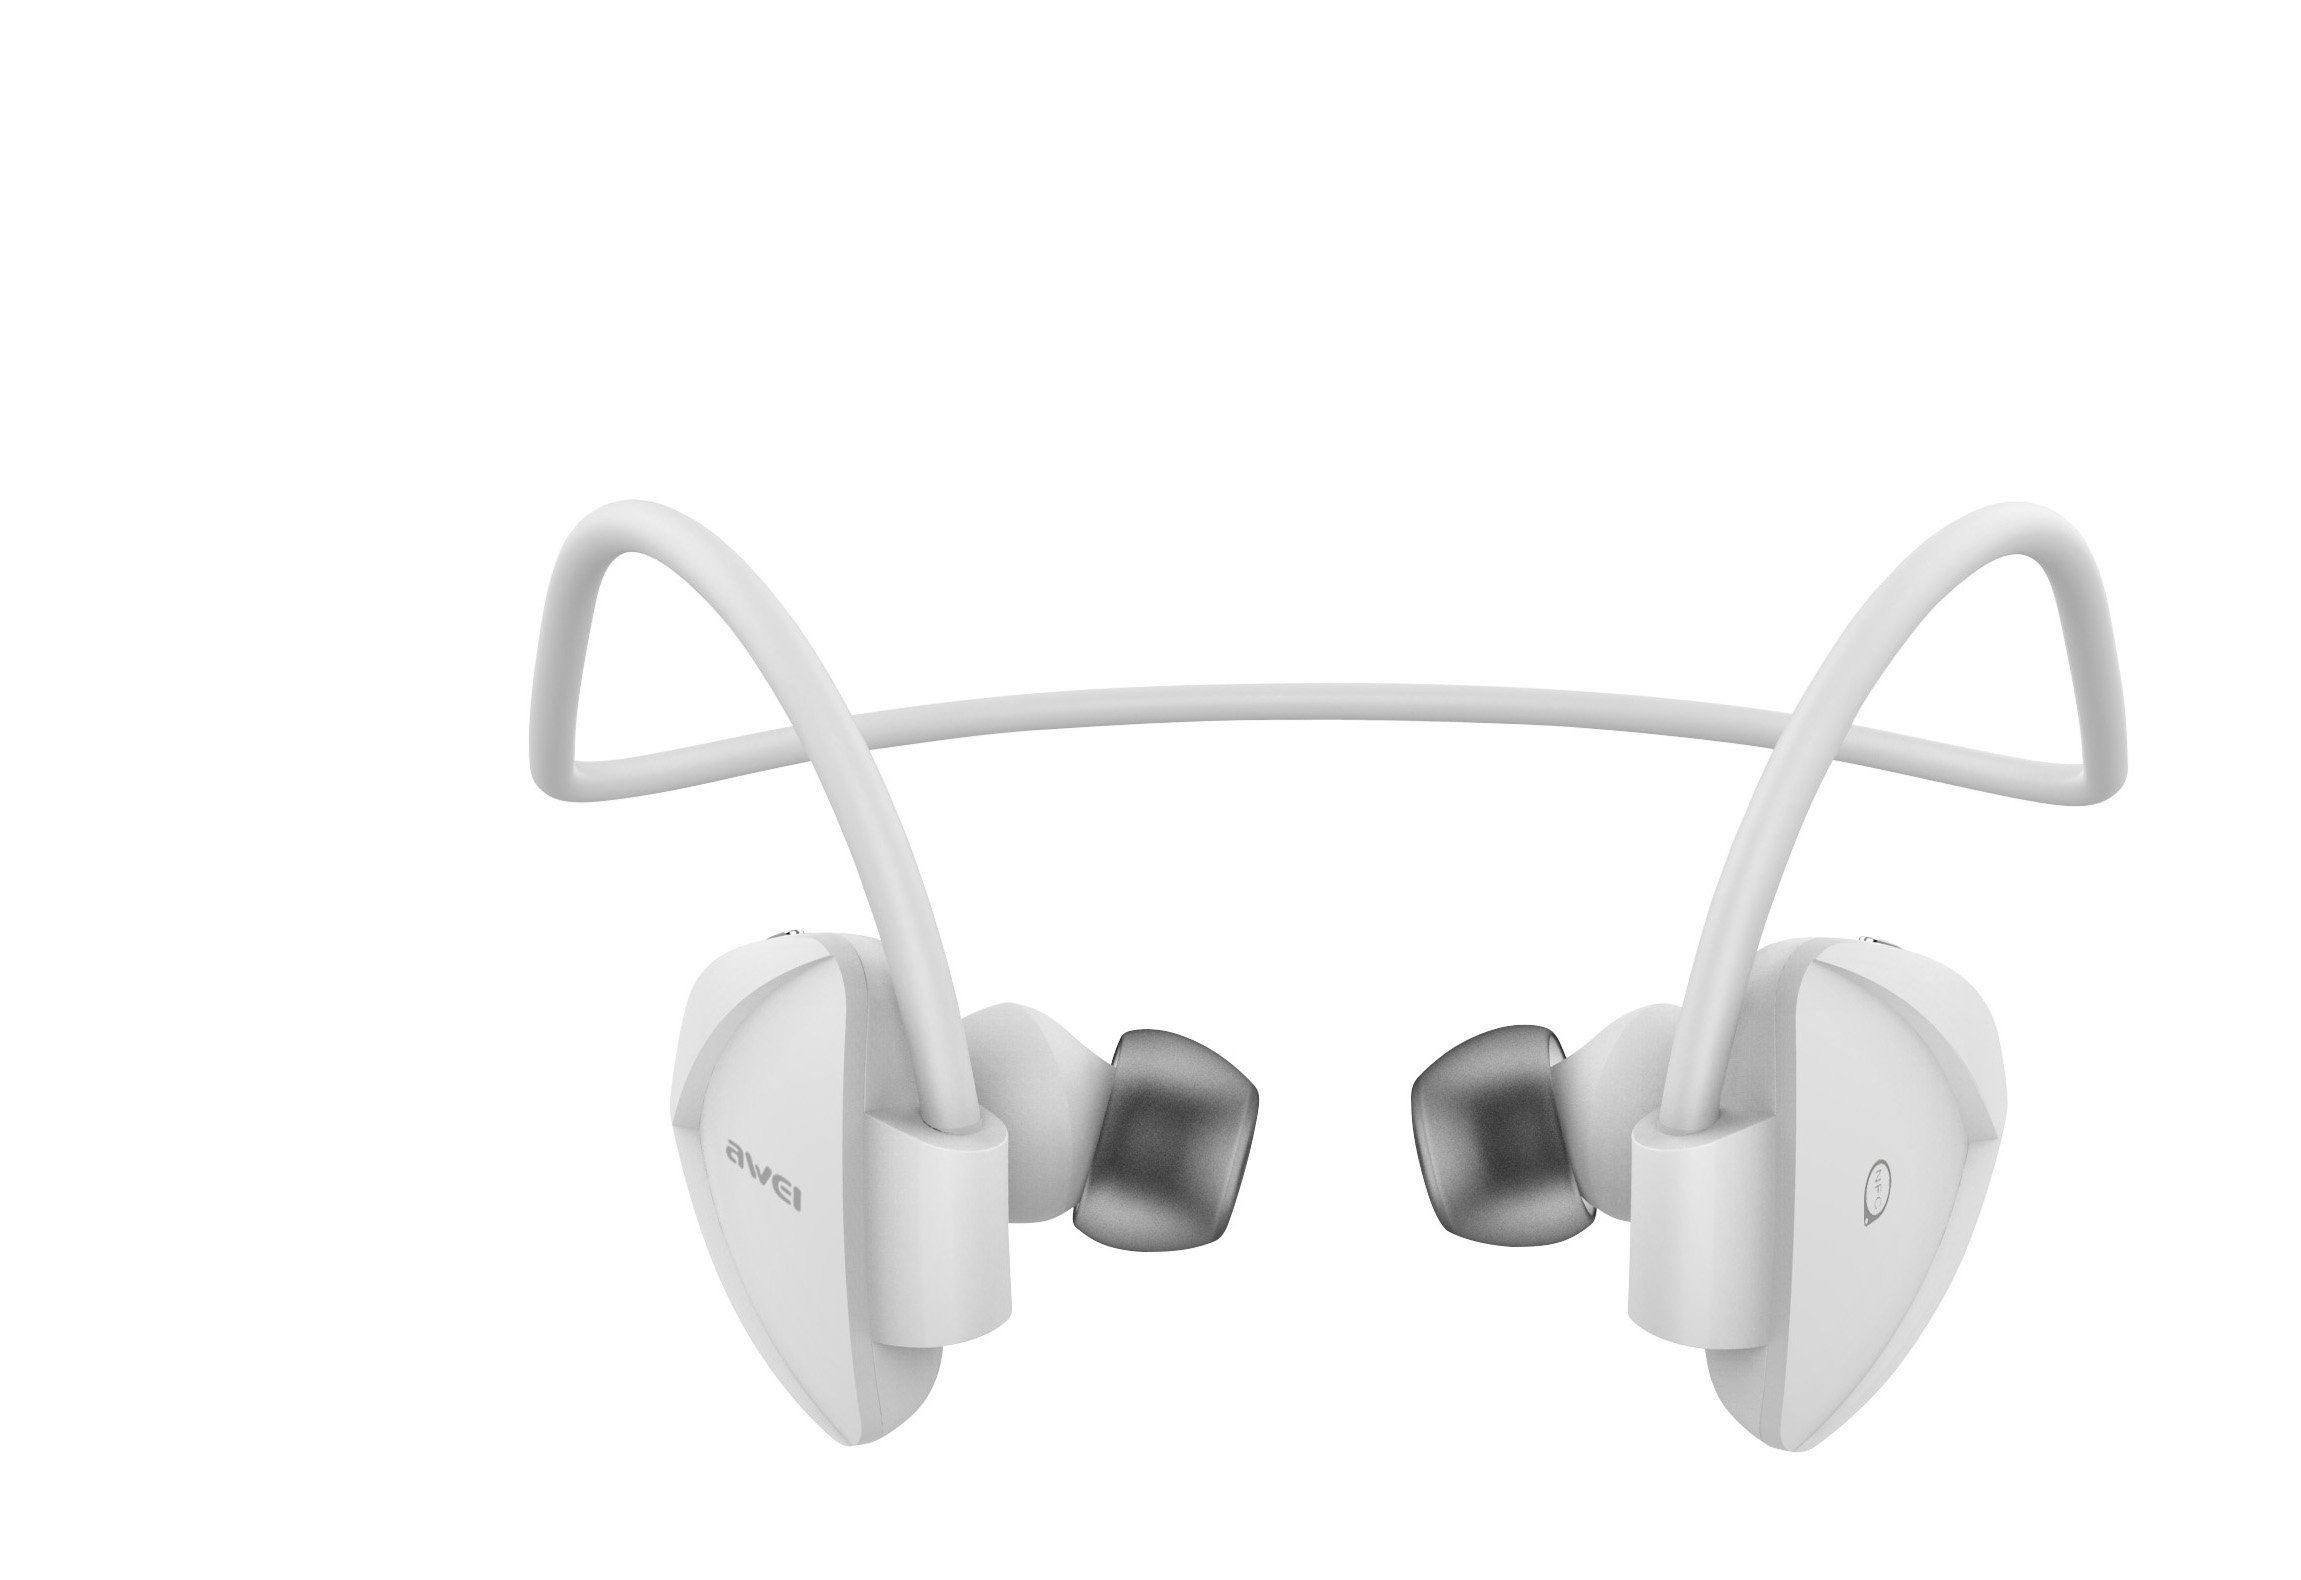 New Arrival XY1236 Wireless Sports Headphones Bluetooth 4 Sweat Proof for IPhone Android MP3 MP4 IPad IPod With Microphone new arrival awei a840bl wireless sports bluetooth 4 sweat proof for iphone android mp3 mp4 ipad ipod with microphone